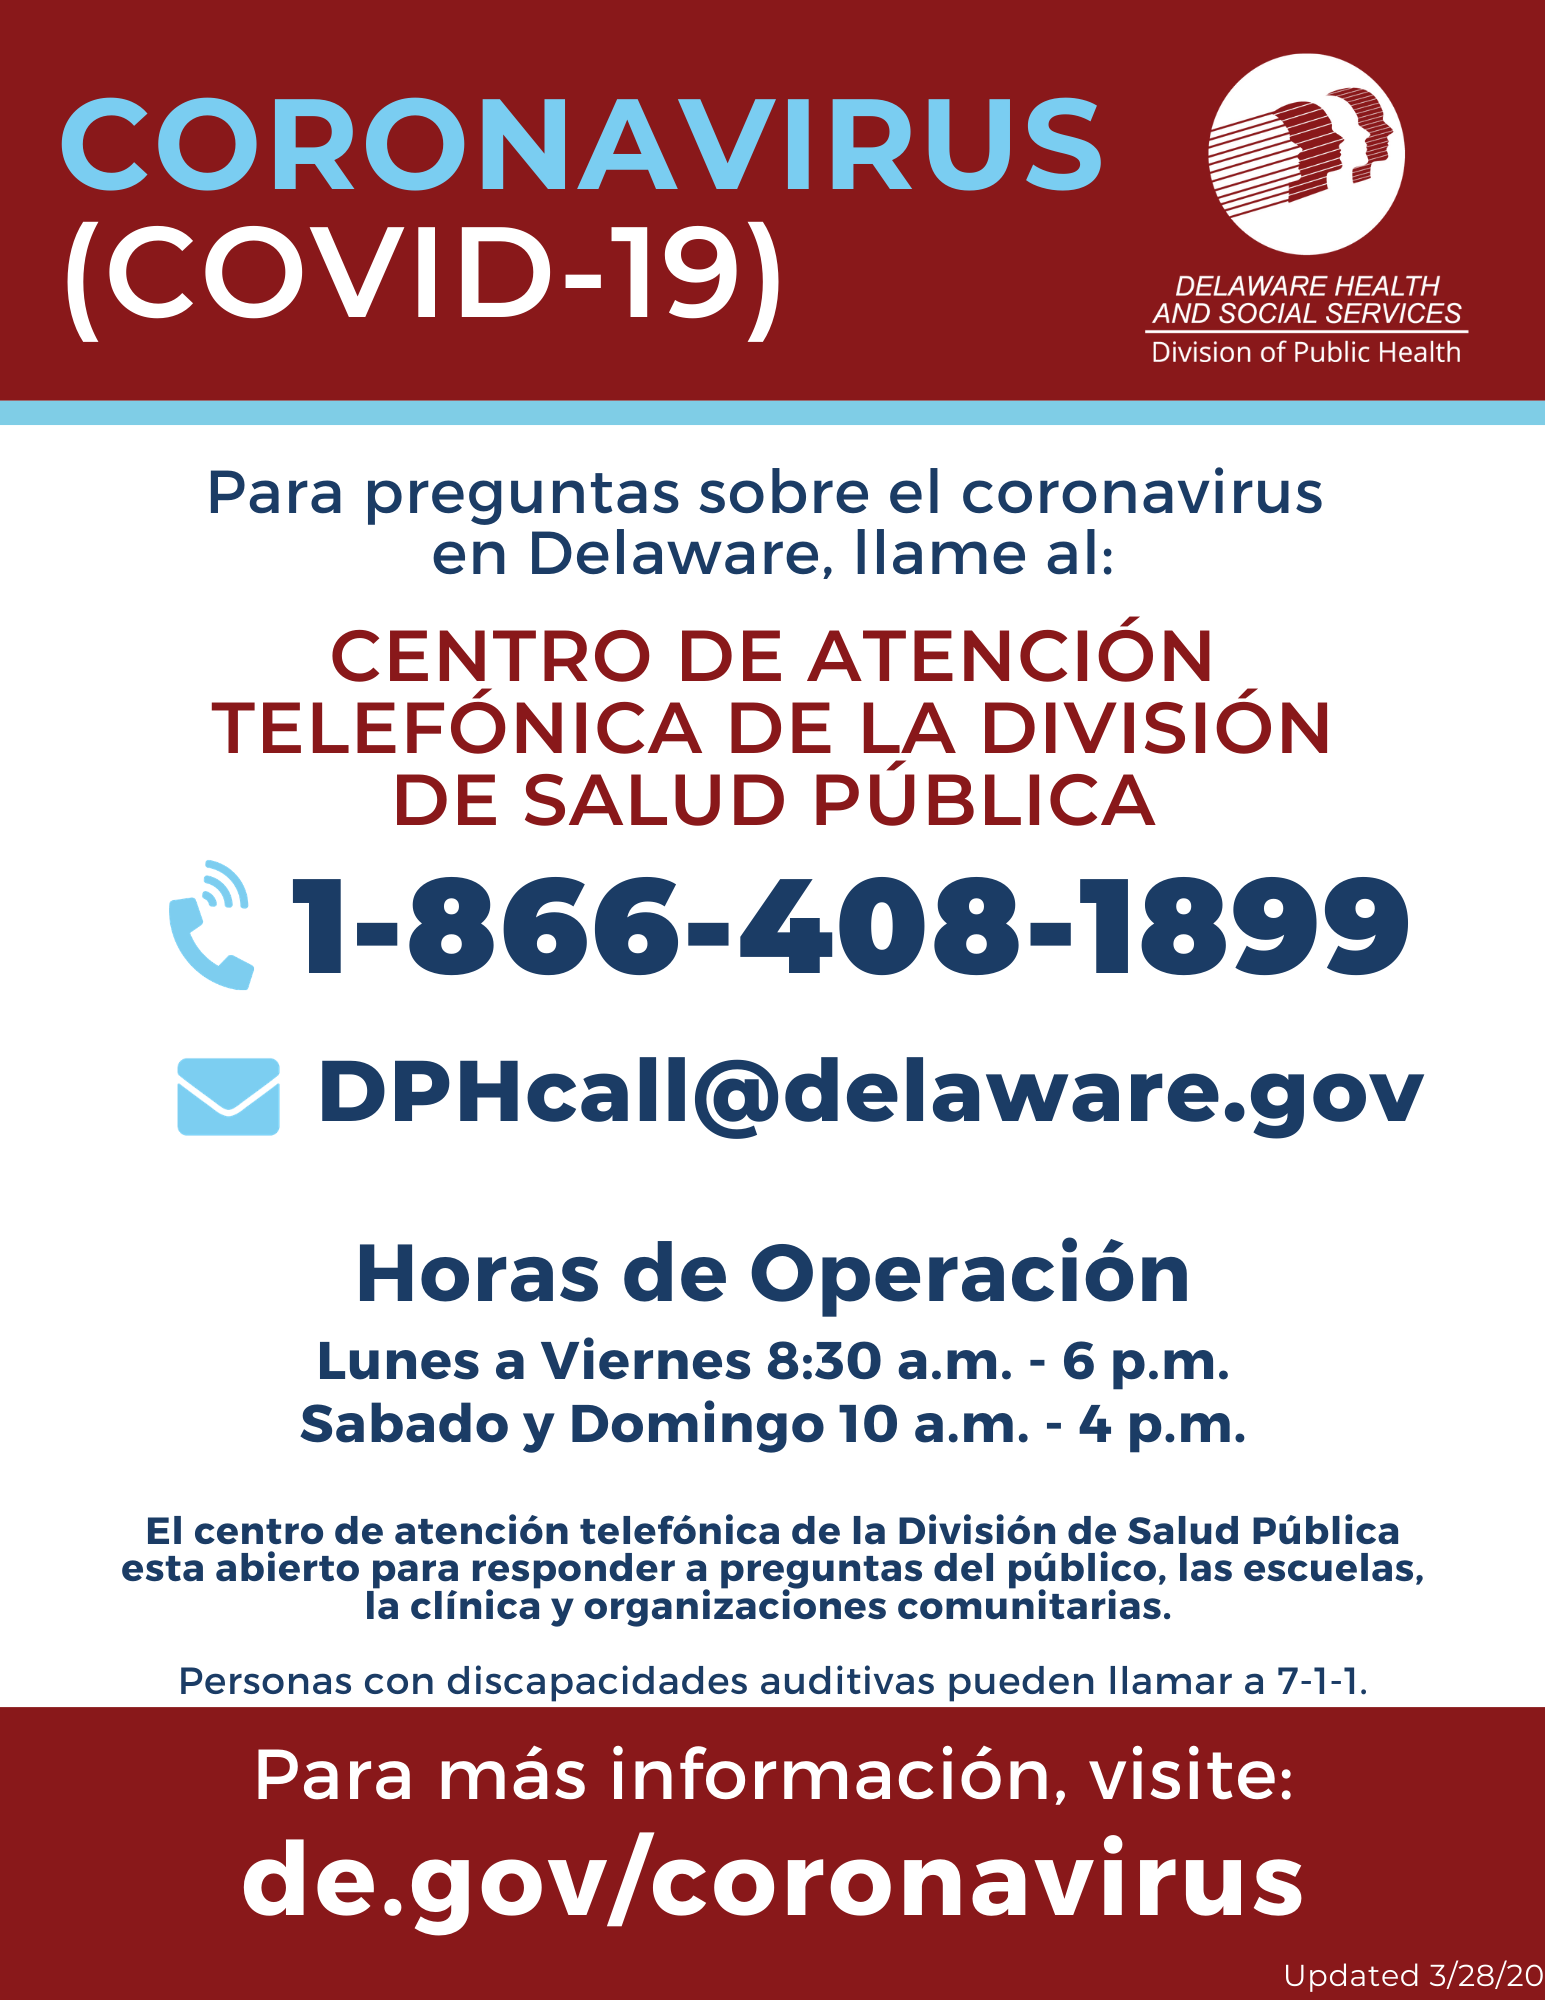 Spanish language call center